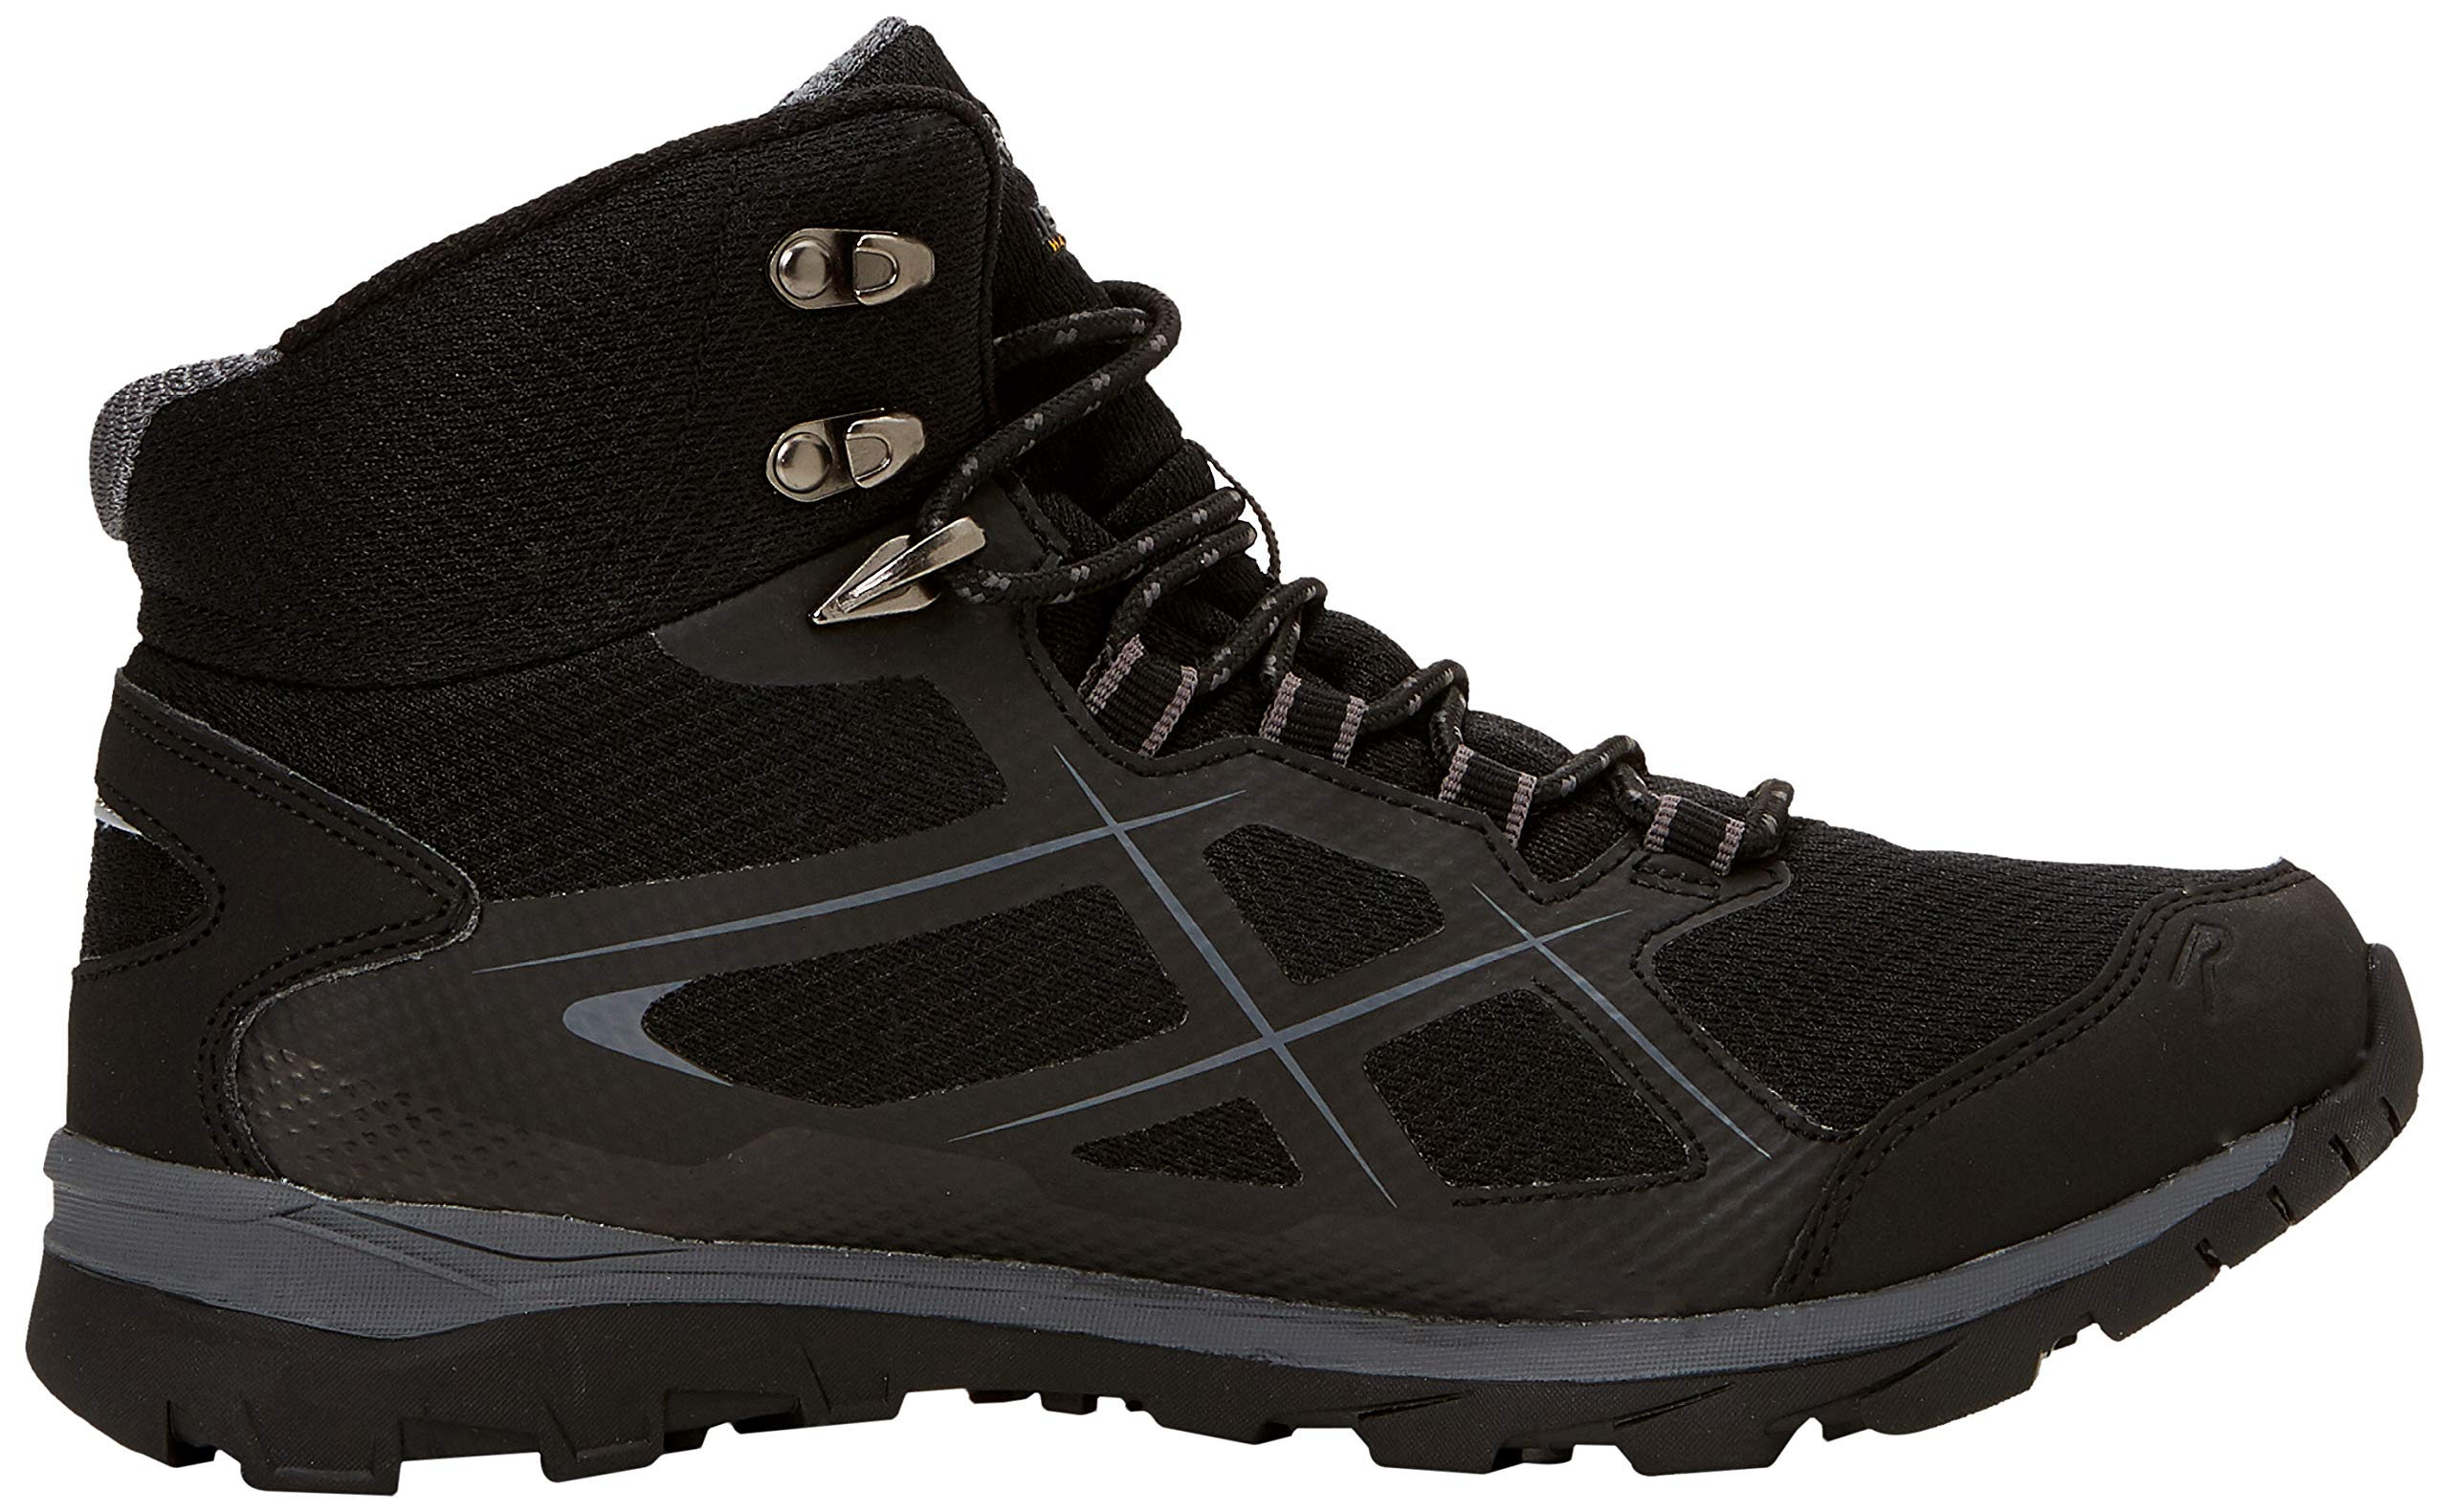 81xmye9GtZL - Regatta Kota Mid, Men's's High Rise Hiking Boots